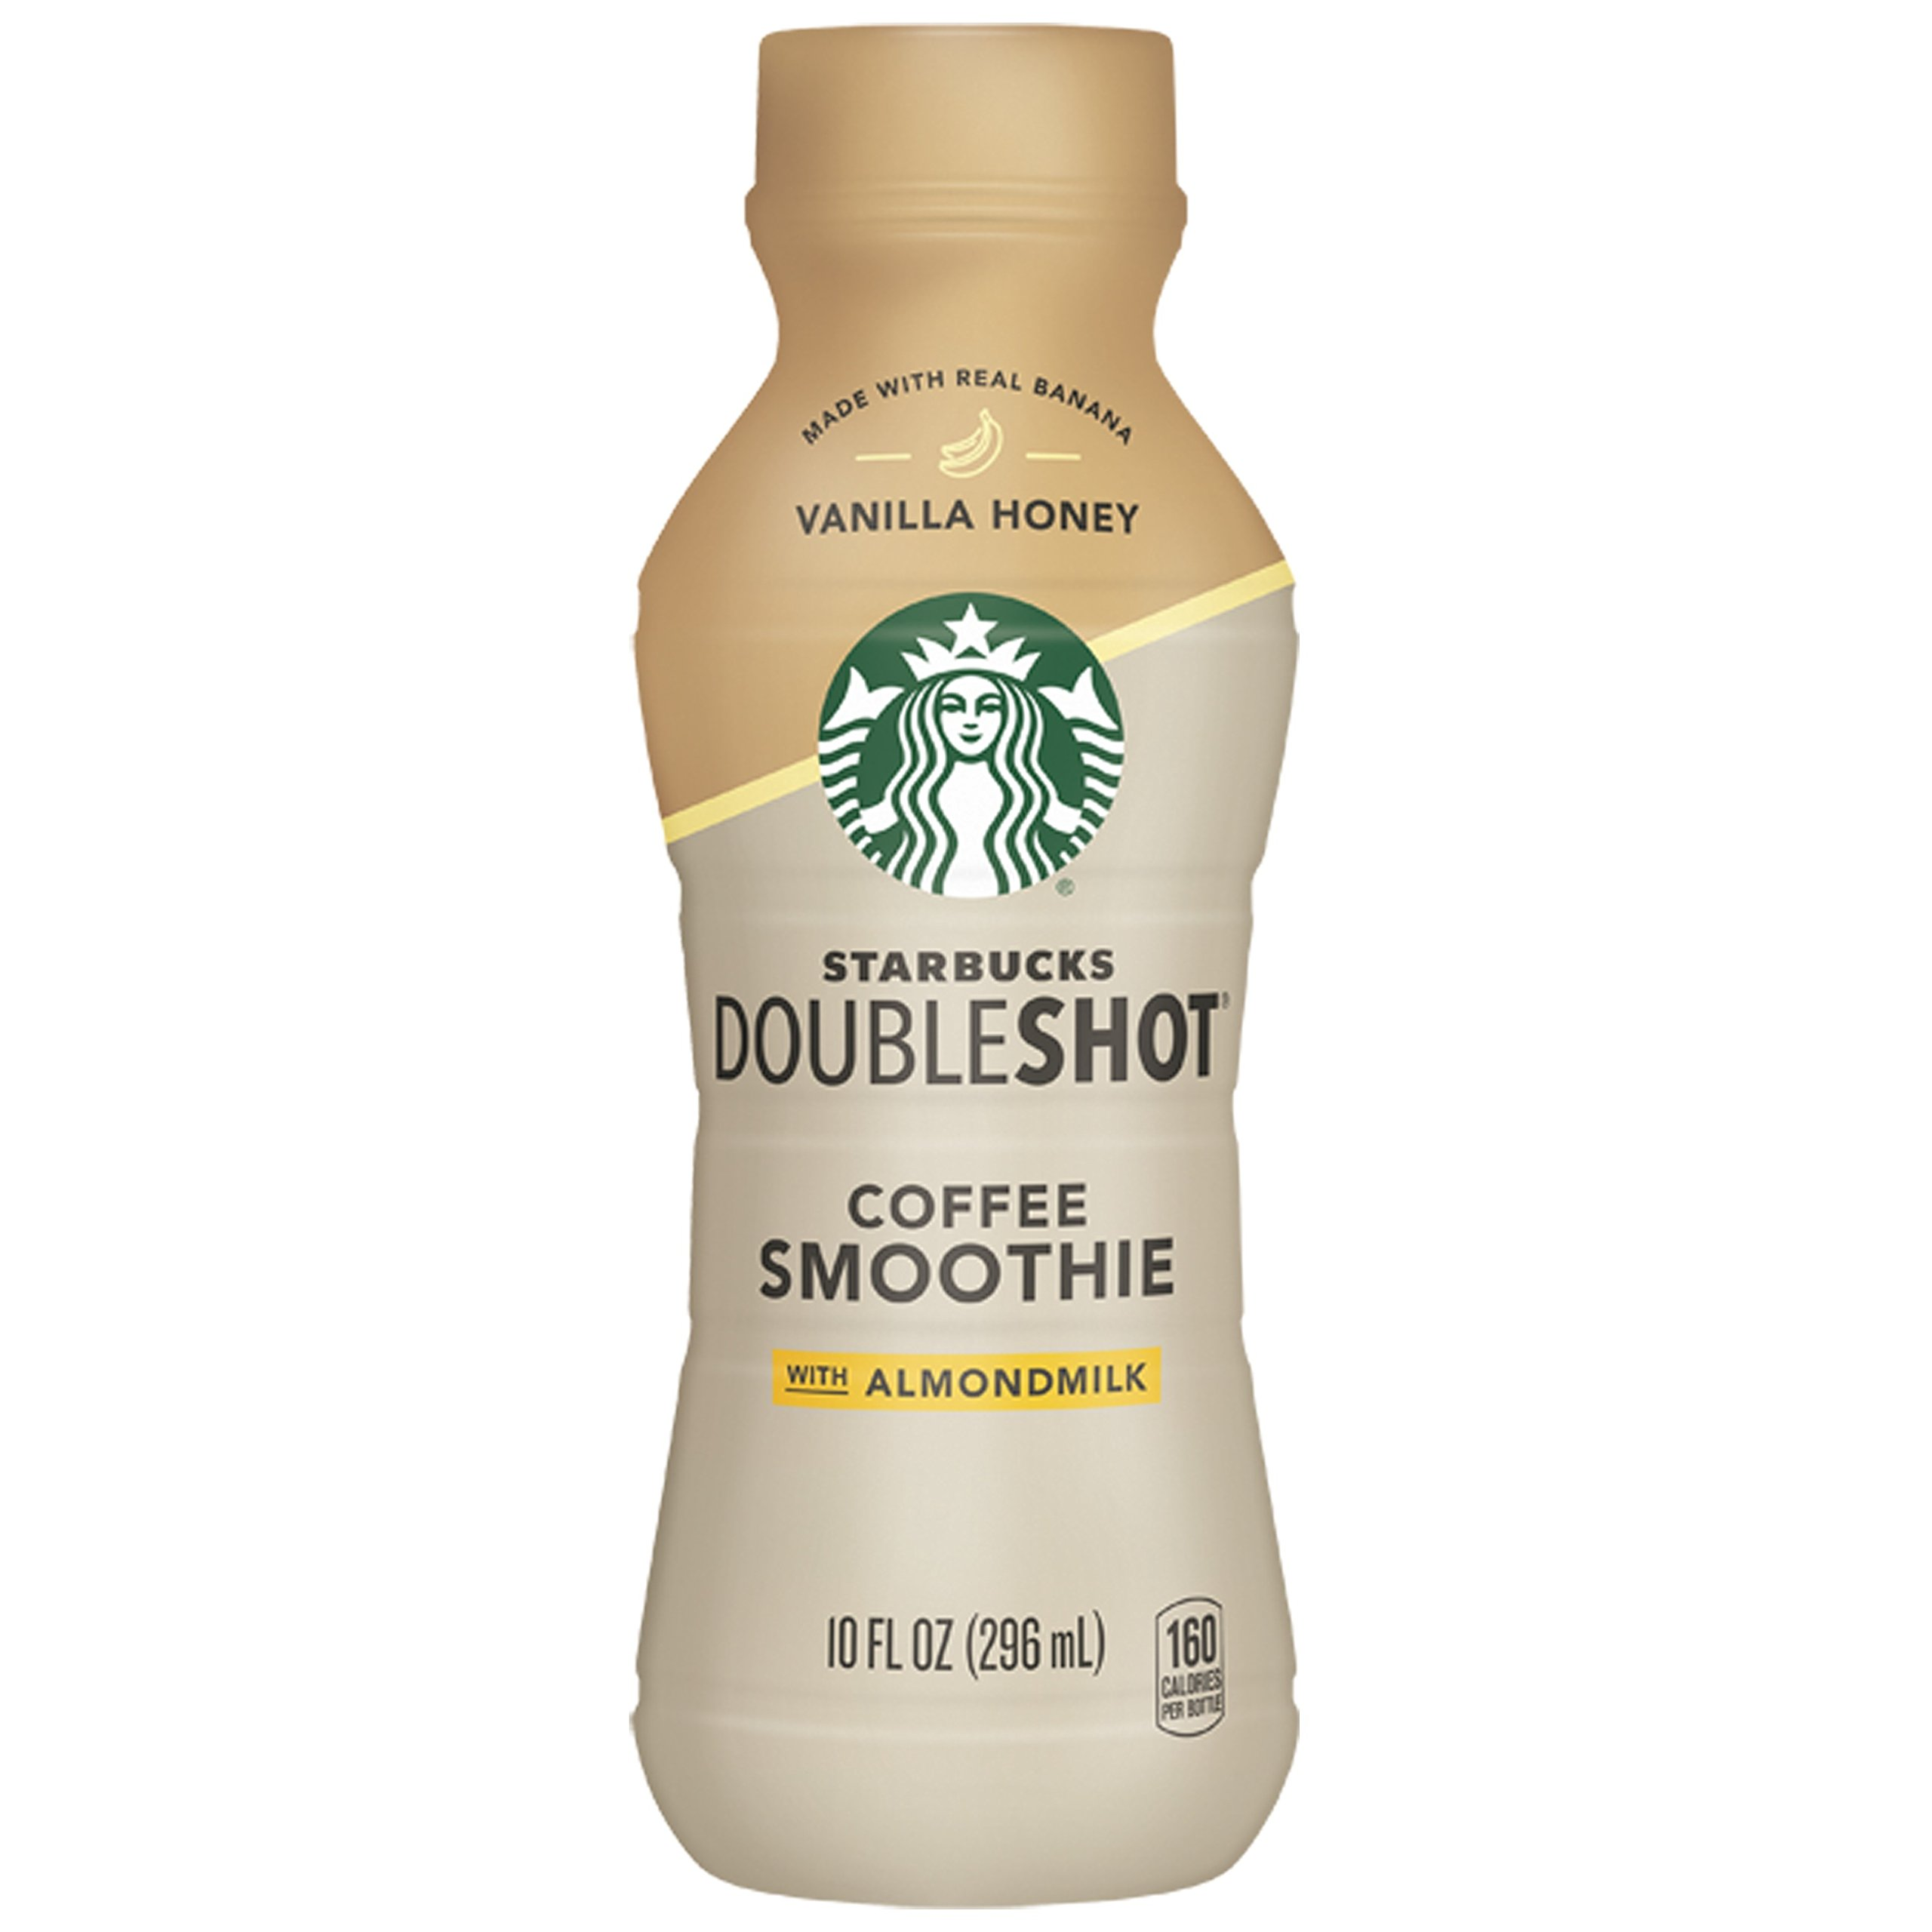 Amazon.com : Starbucks Doubleshot Coffee Smoothie, Dark